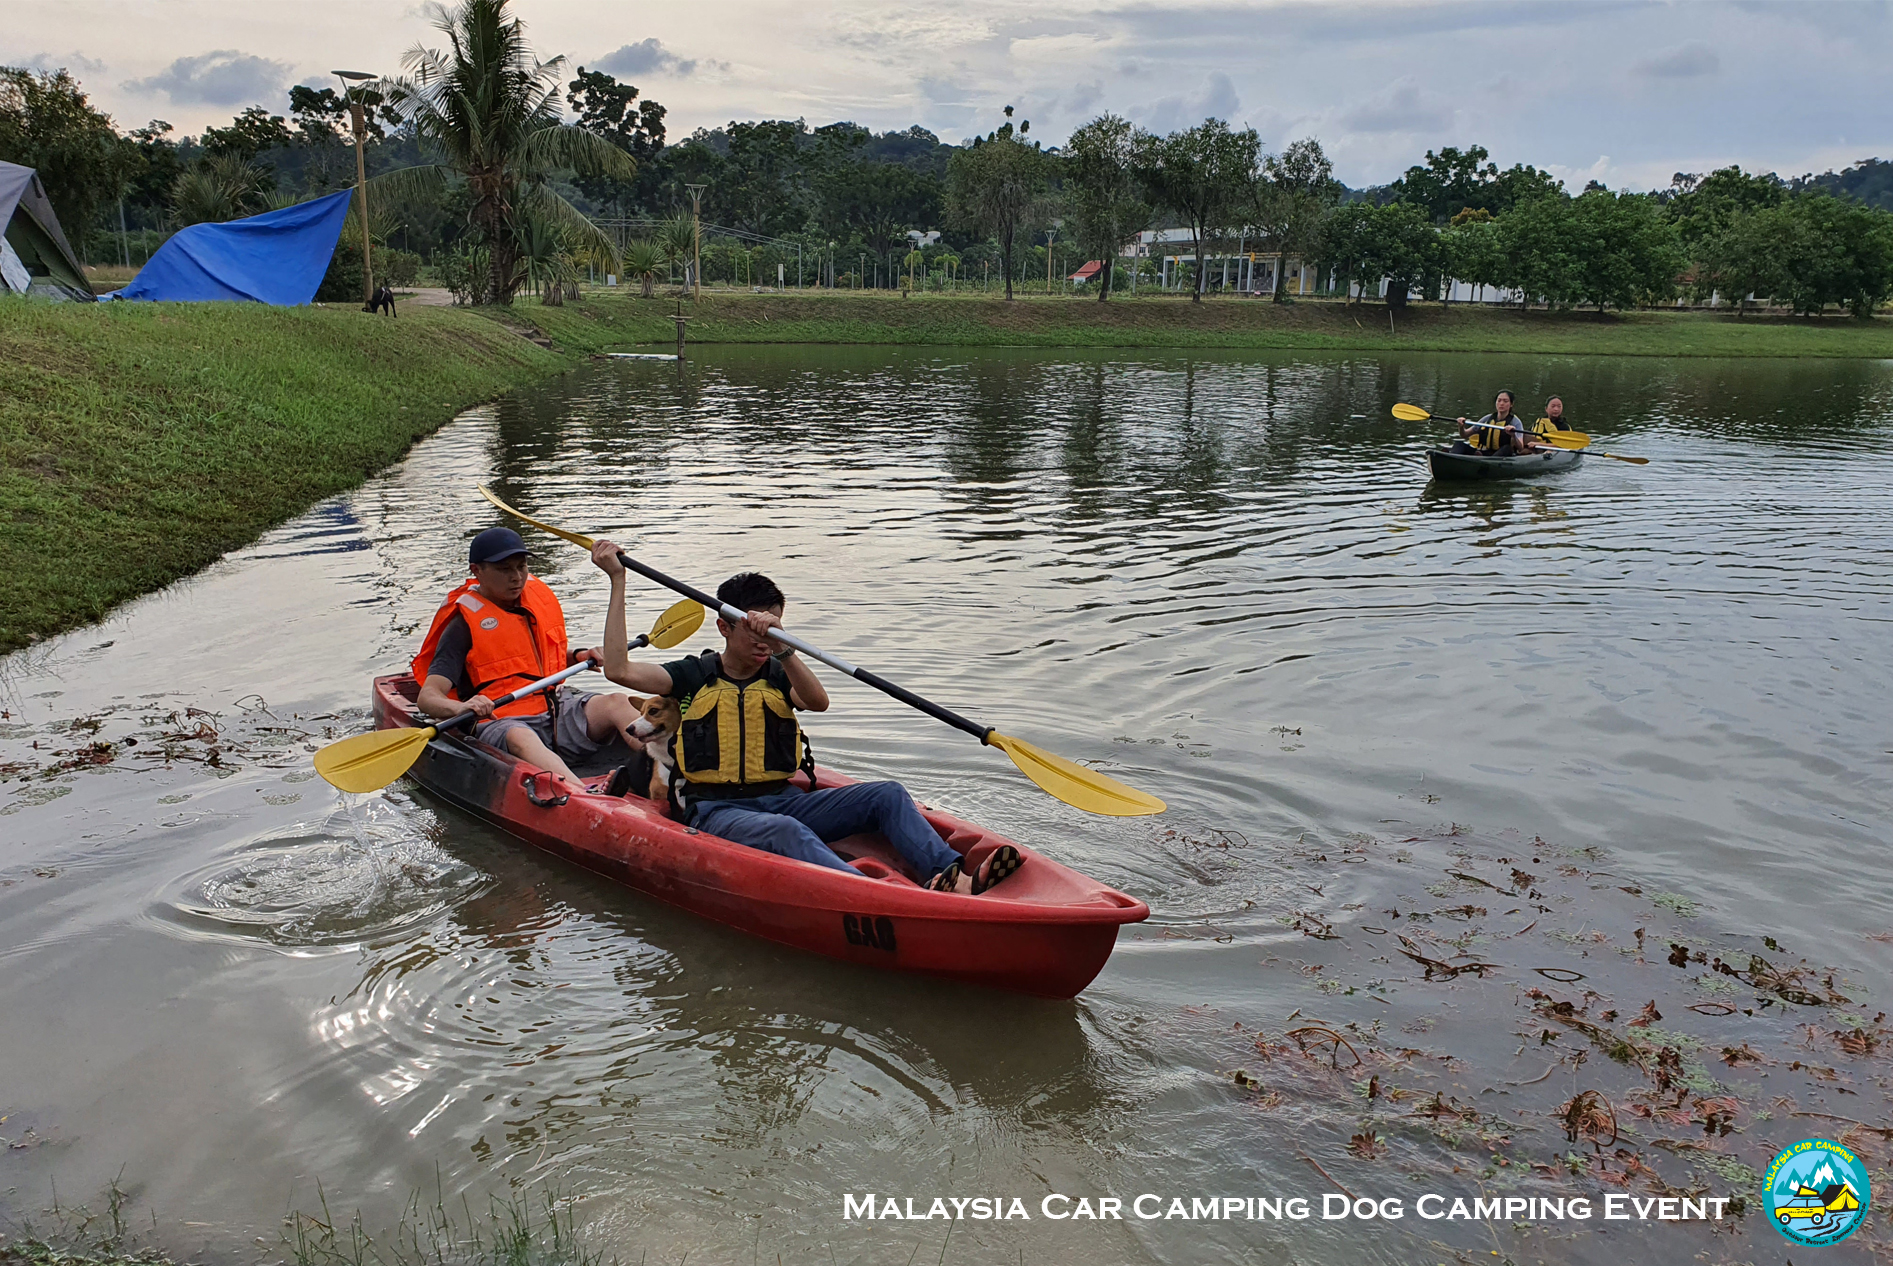 kayaking_dog_dog_camping_event_selangor_camping_site_malaysia_car_camping_private_event_organizer-6